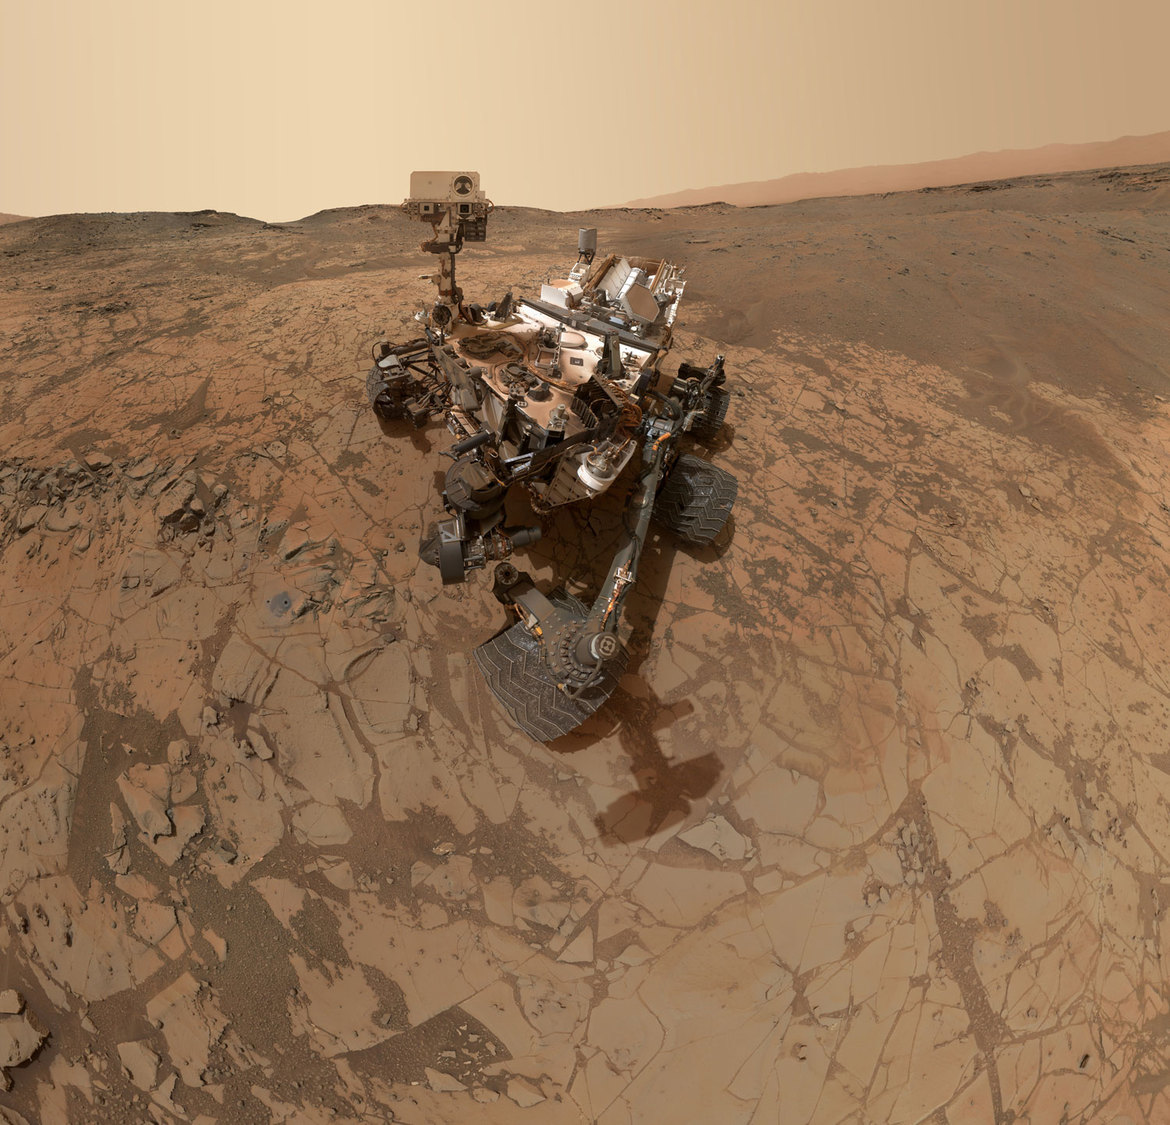 Curiosity Self-Portrait at 'Mojave' Site on Mount Sharp (Image: NASA/JPL)